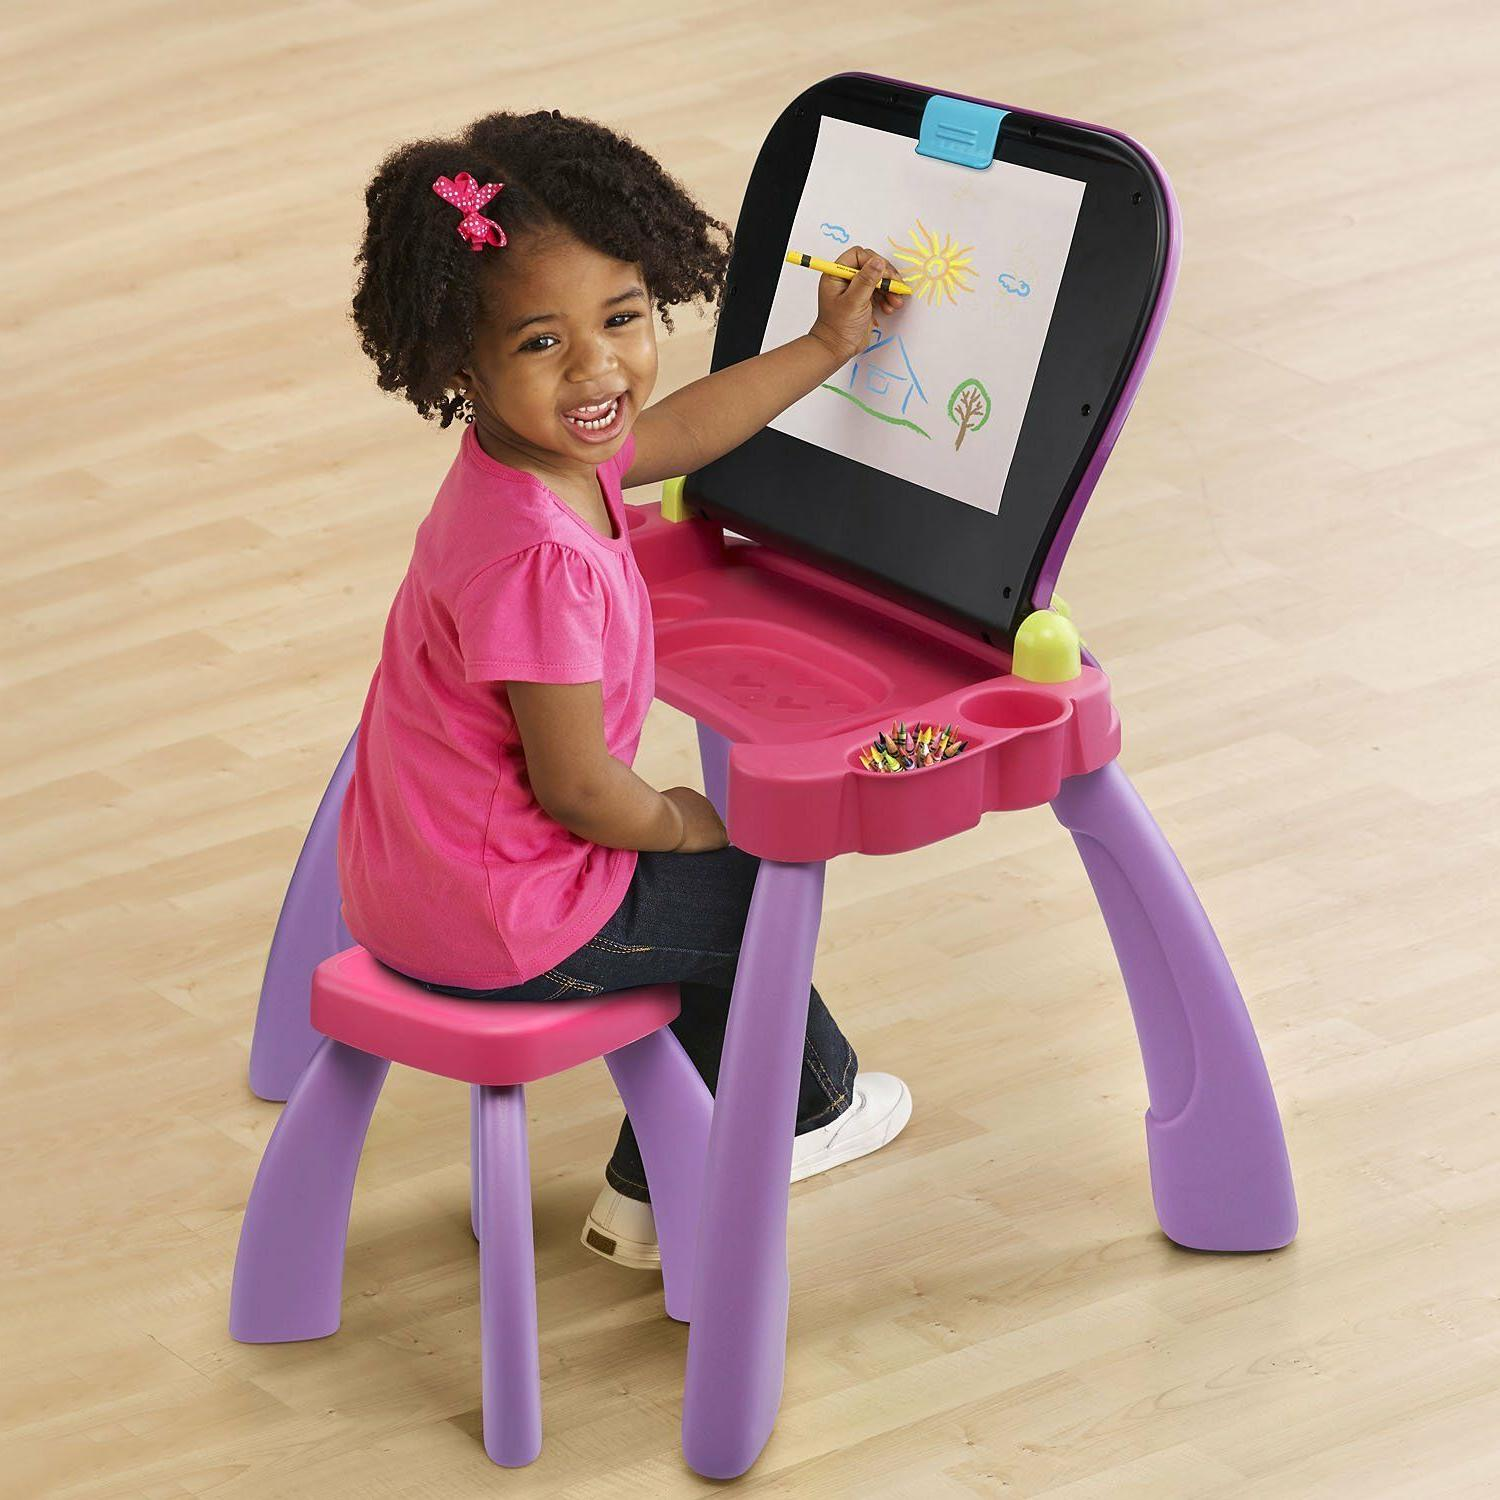 VTech and Activity Desk Developmental Desk Purple